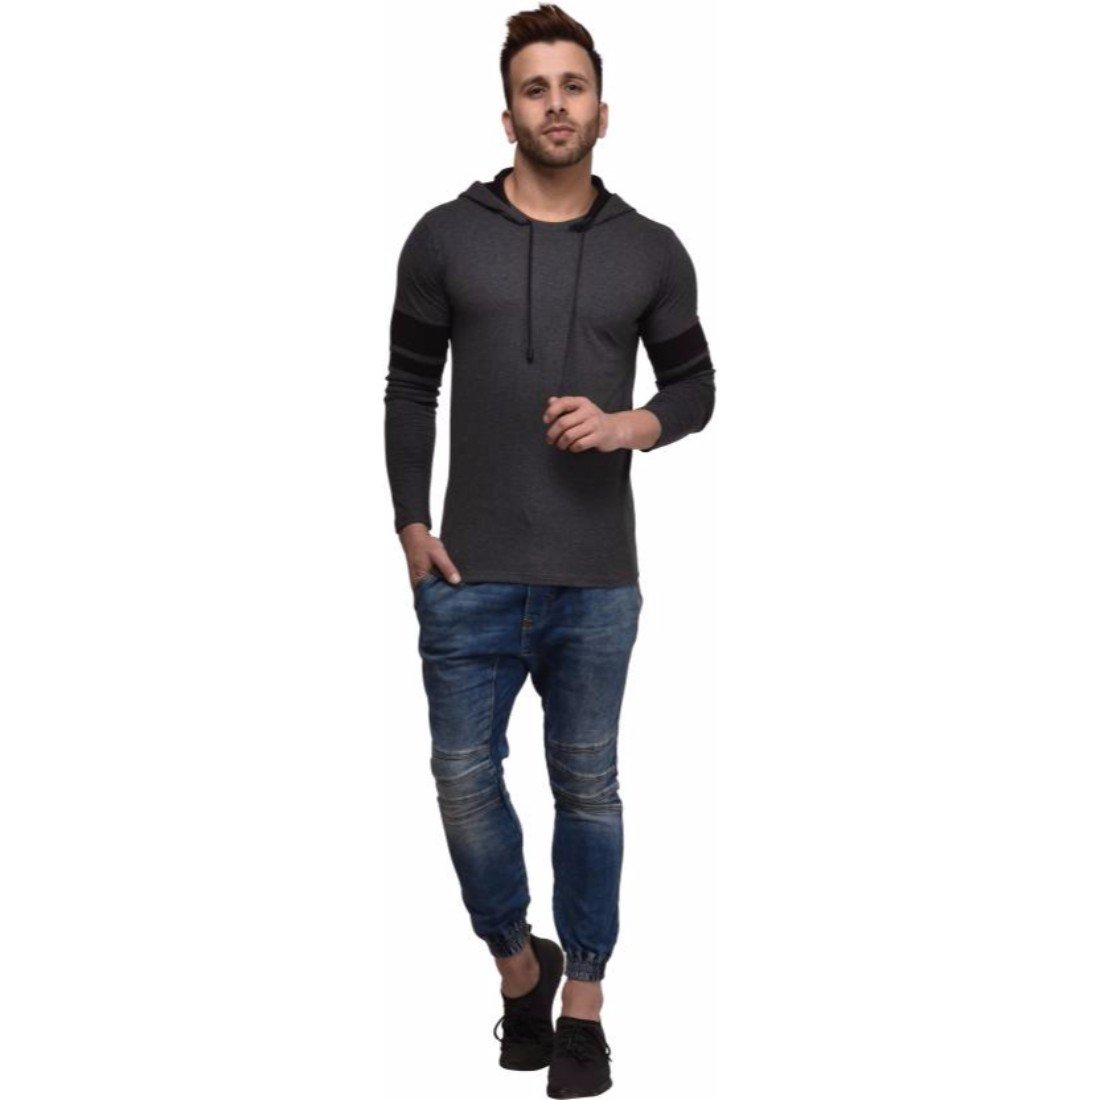 ddc4605eafee Kay Dee Solid Men s Hooded Grey T-shirt  Amazon.in  Clothing   Accessories